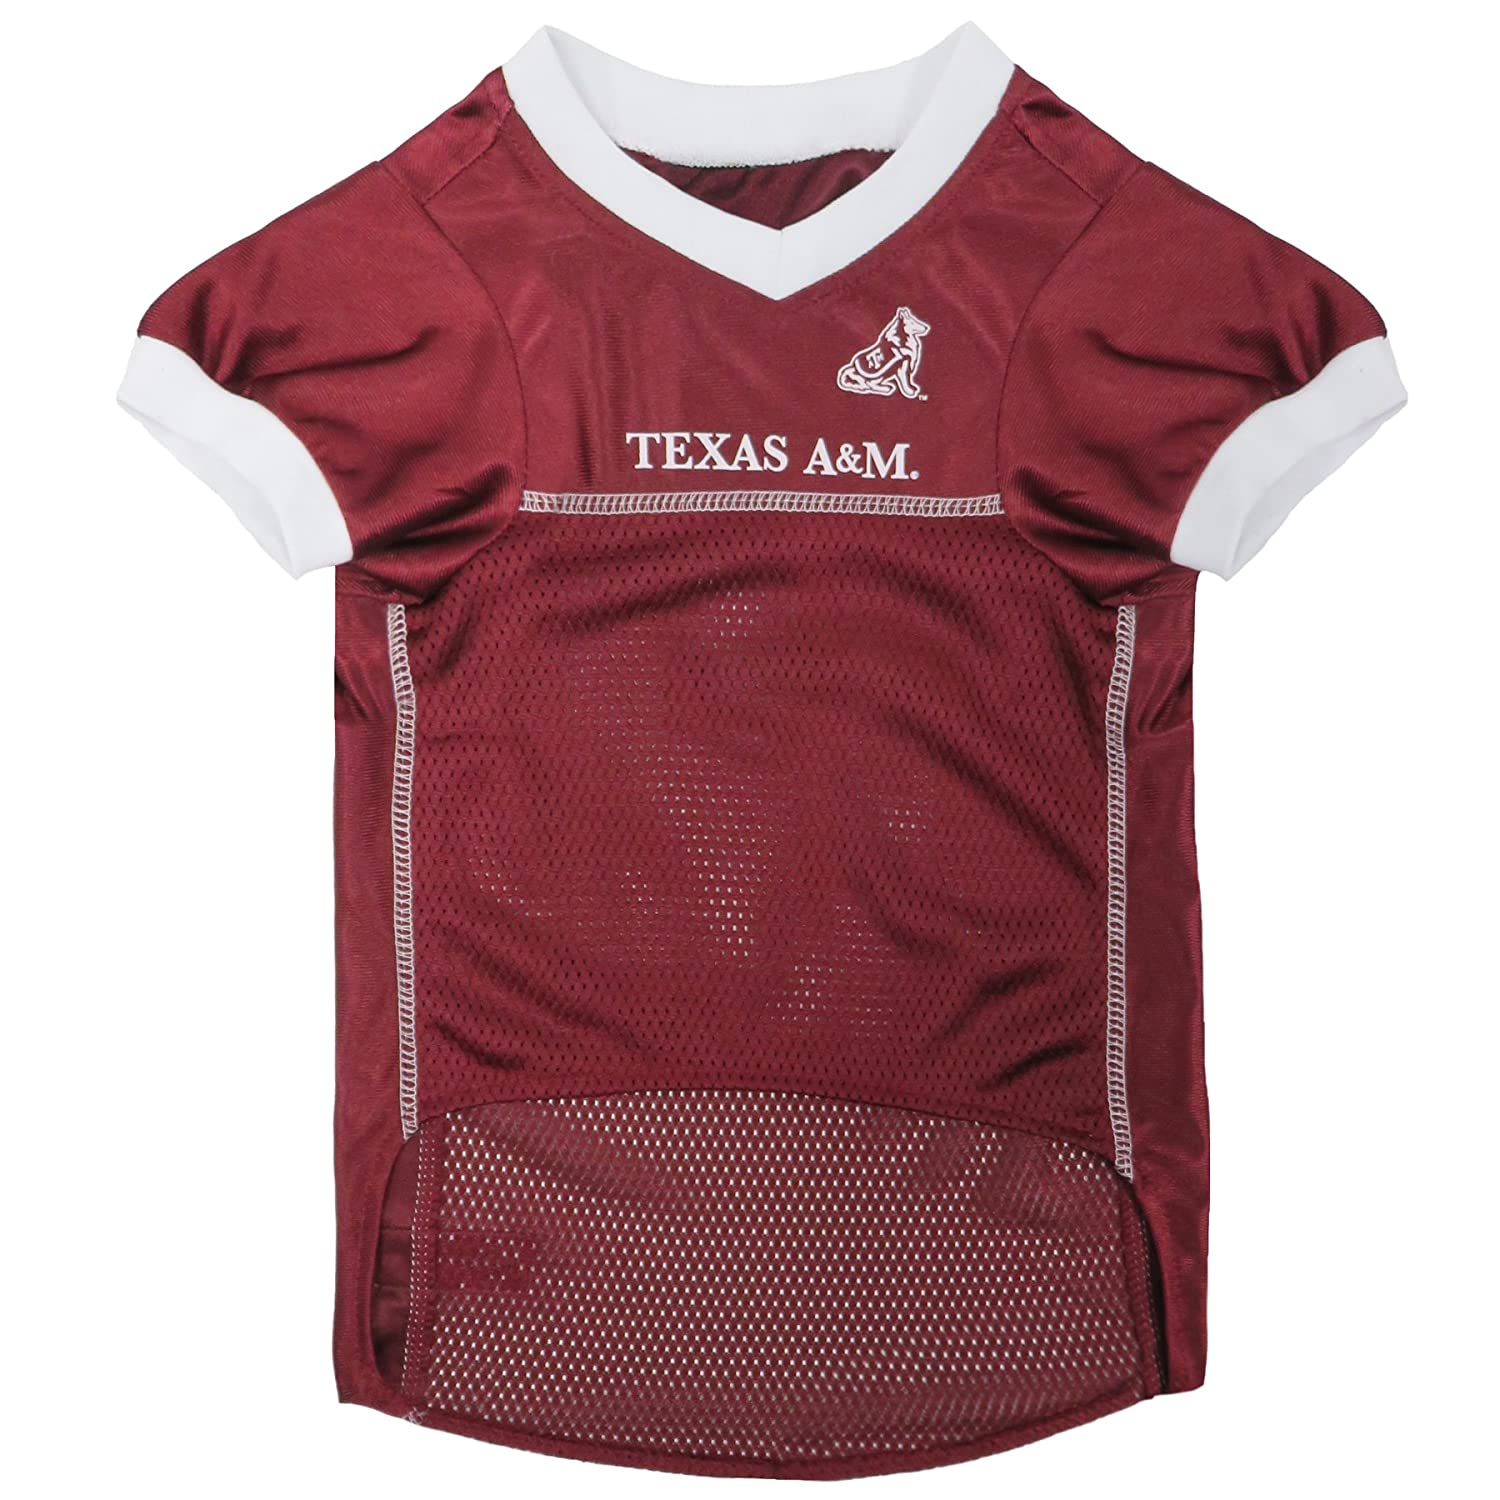 Basketball Jerseys Football Jerseys for Dogs /& Cats Available in 50 Collegiate Teams /& 7 Sizes Pets First NCAA PET Apparels